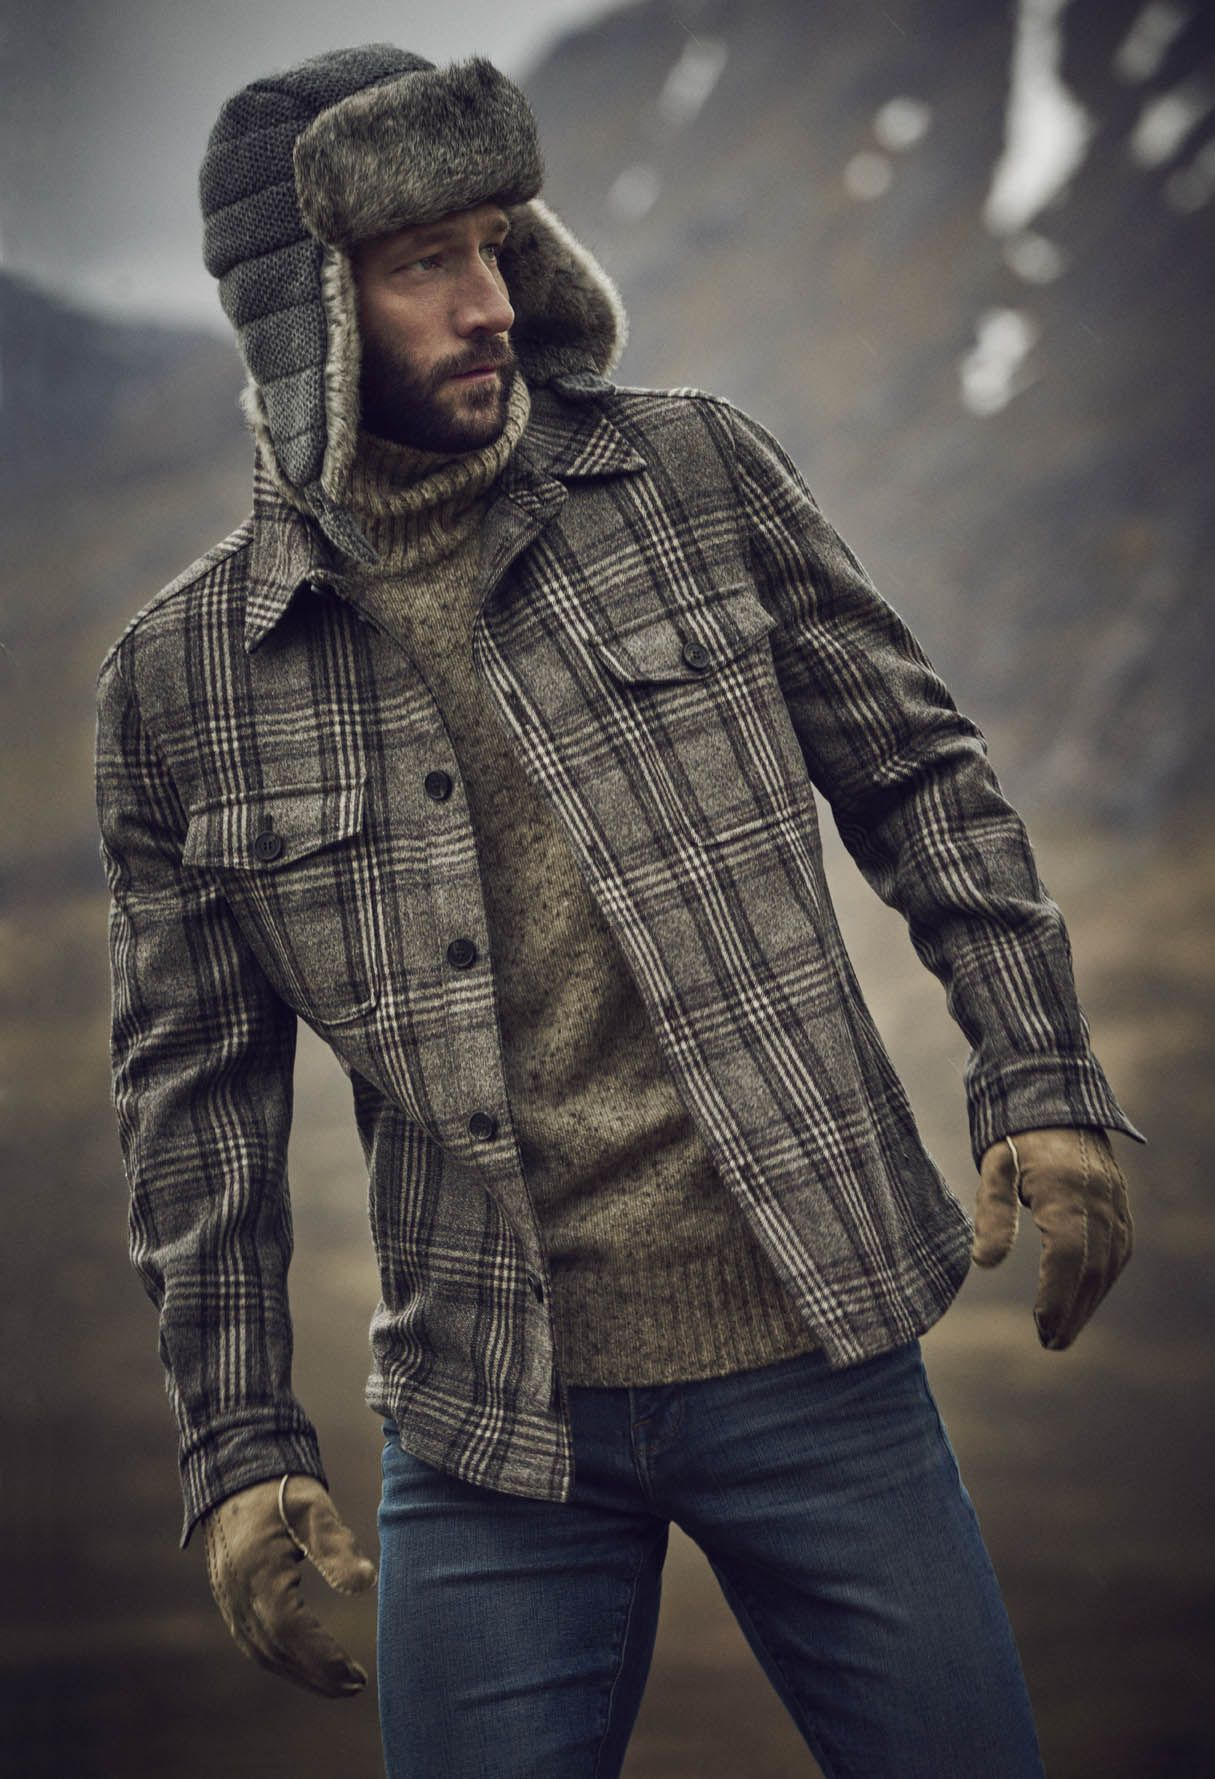 Highlander Style John Halls Models Fashions for The Great Outdoors